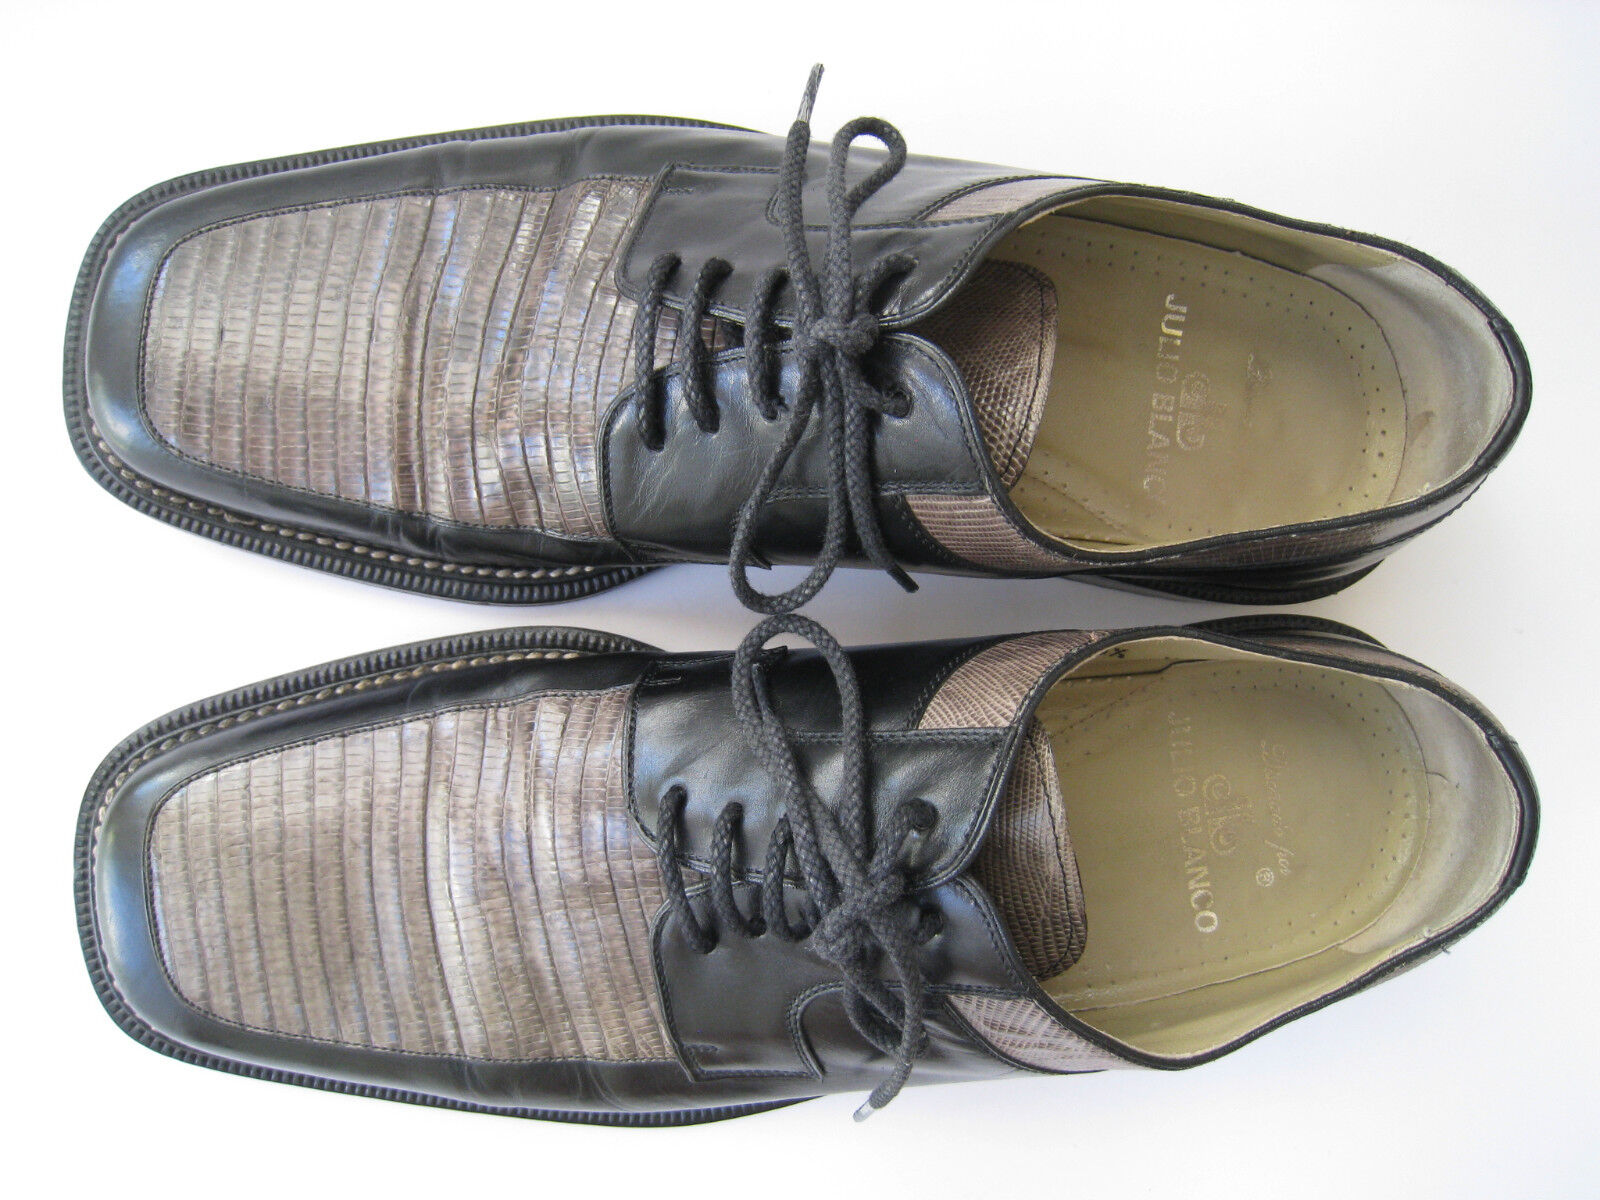 JULIO whiteO GENUINE LIZARD LEATHER HANDMADE OXFORDS US 10.5M  MADE IN SPAIN